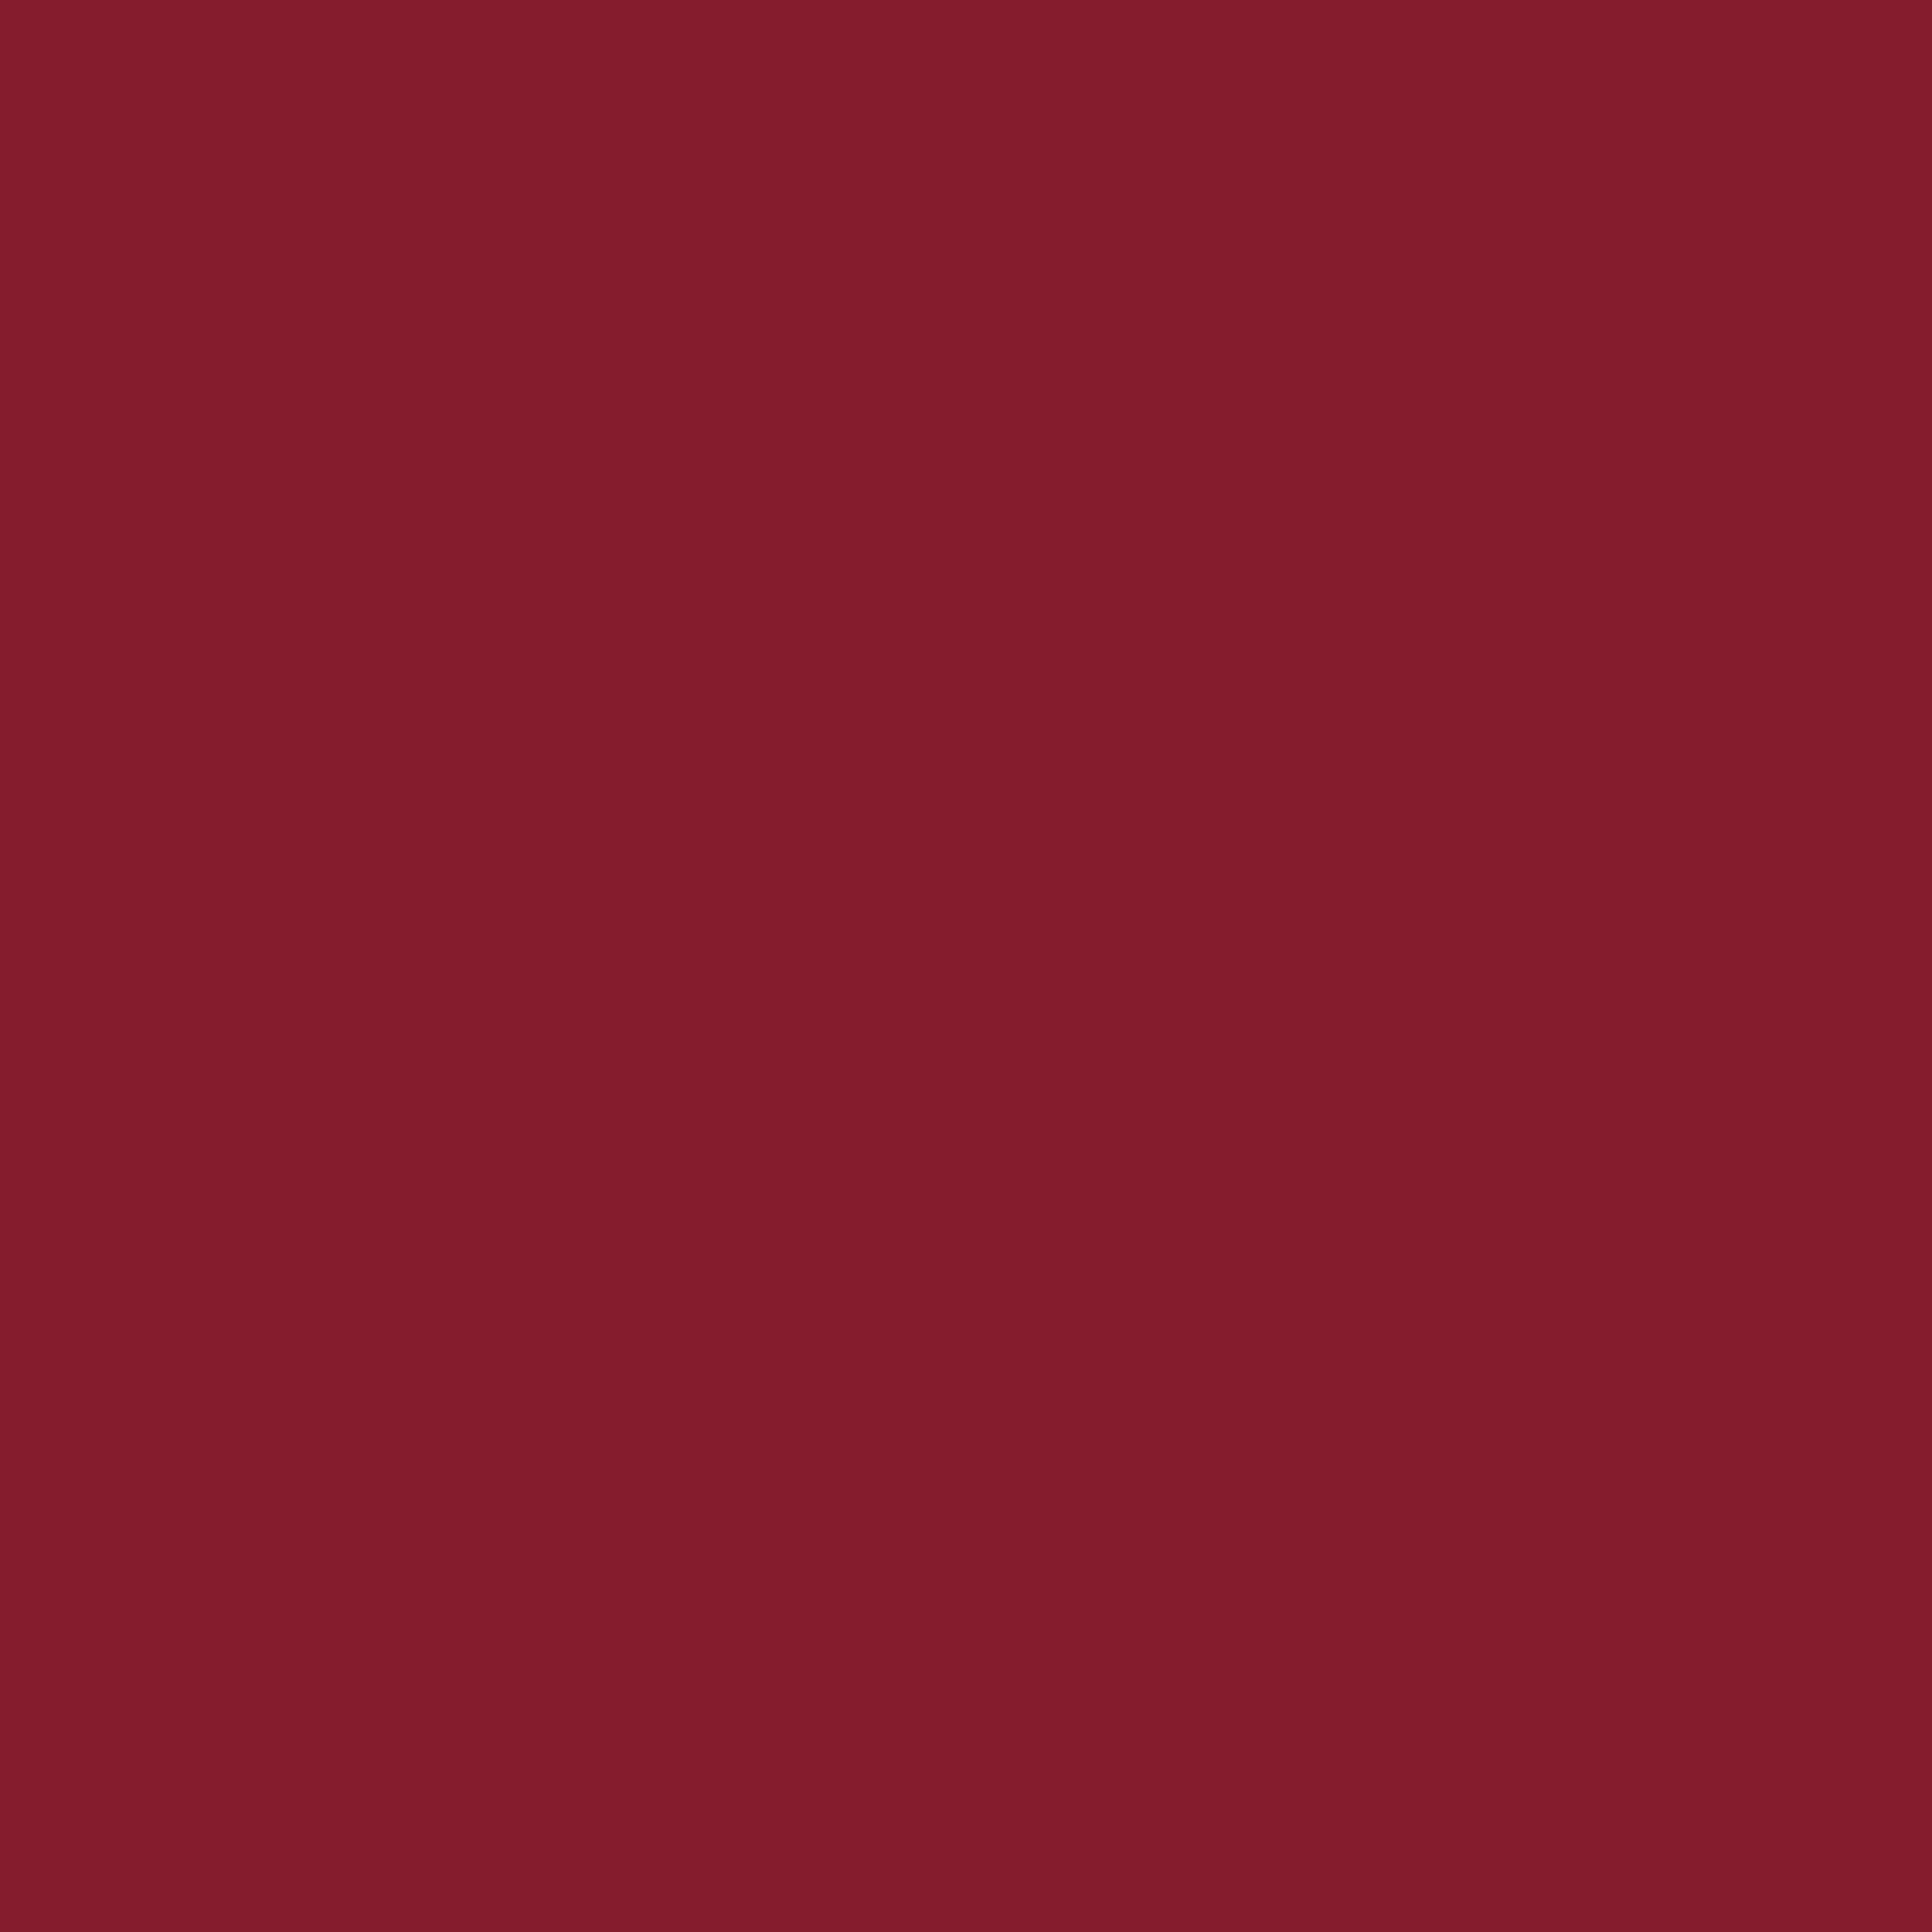 2048x2048 Antique Ruby Solid Color Background